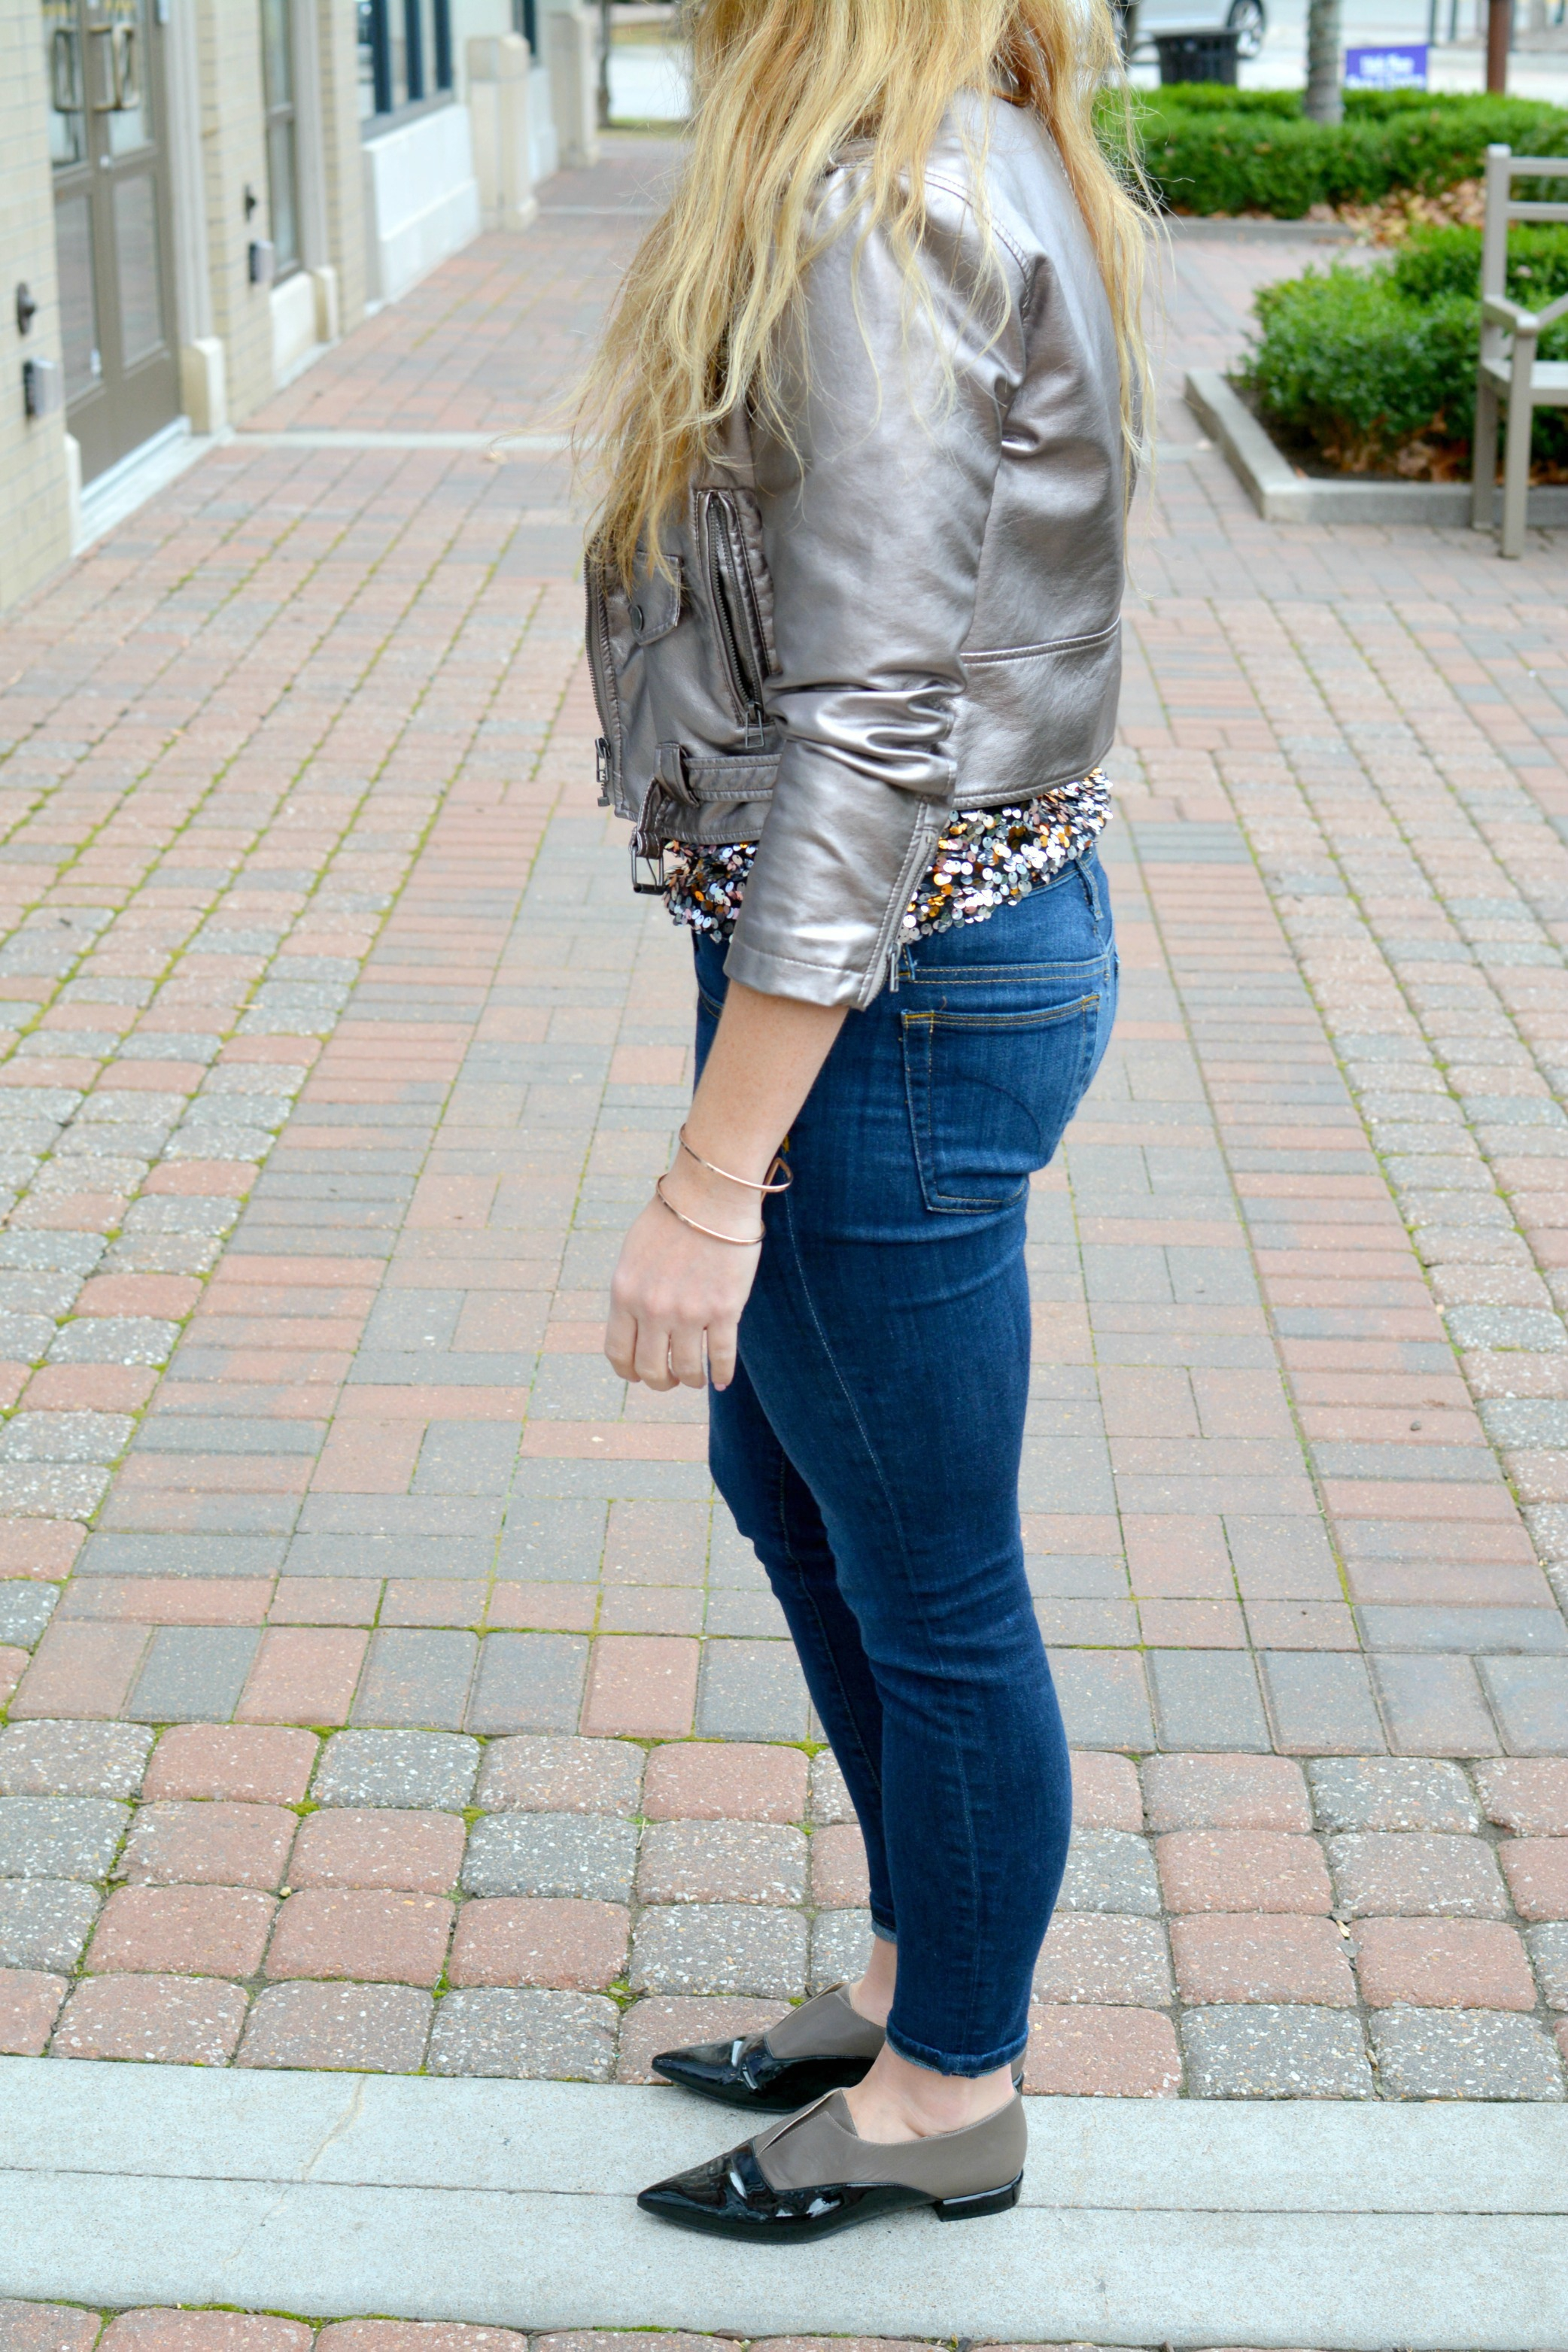 Ashley from LSR in a metallic leather jacket, sequined top, and brogues